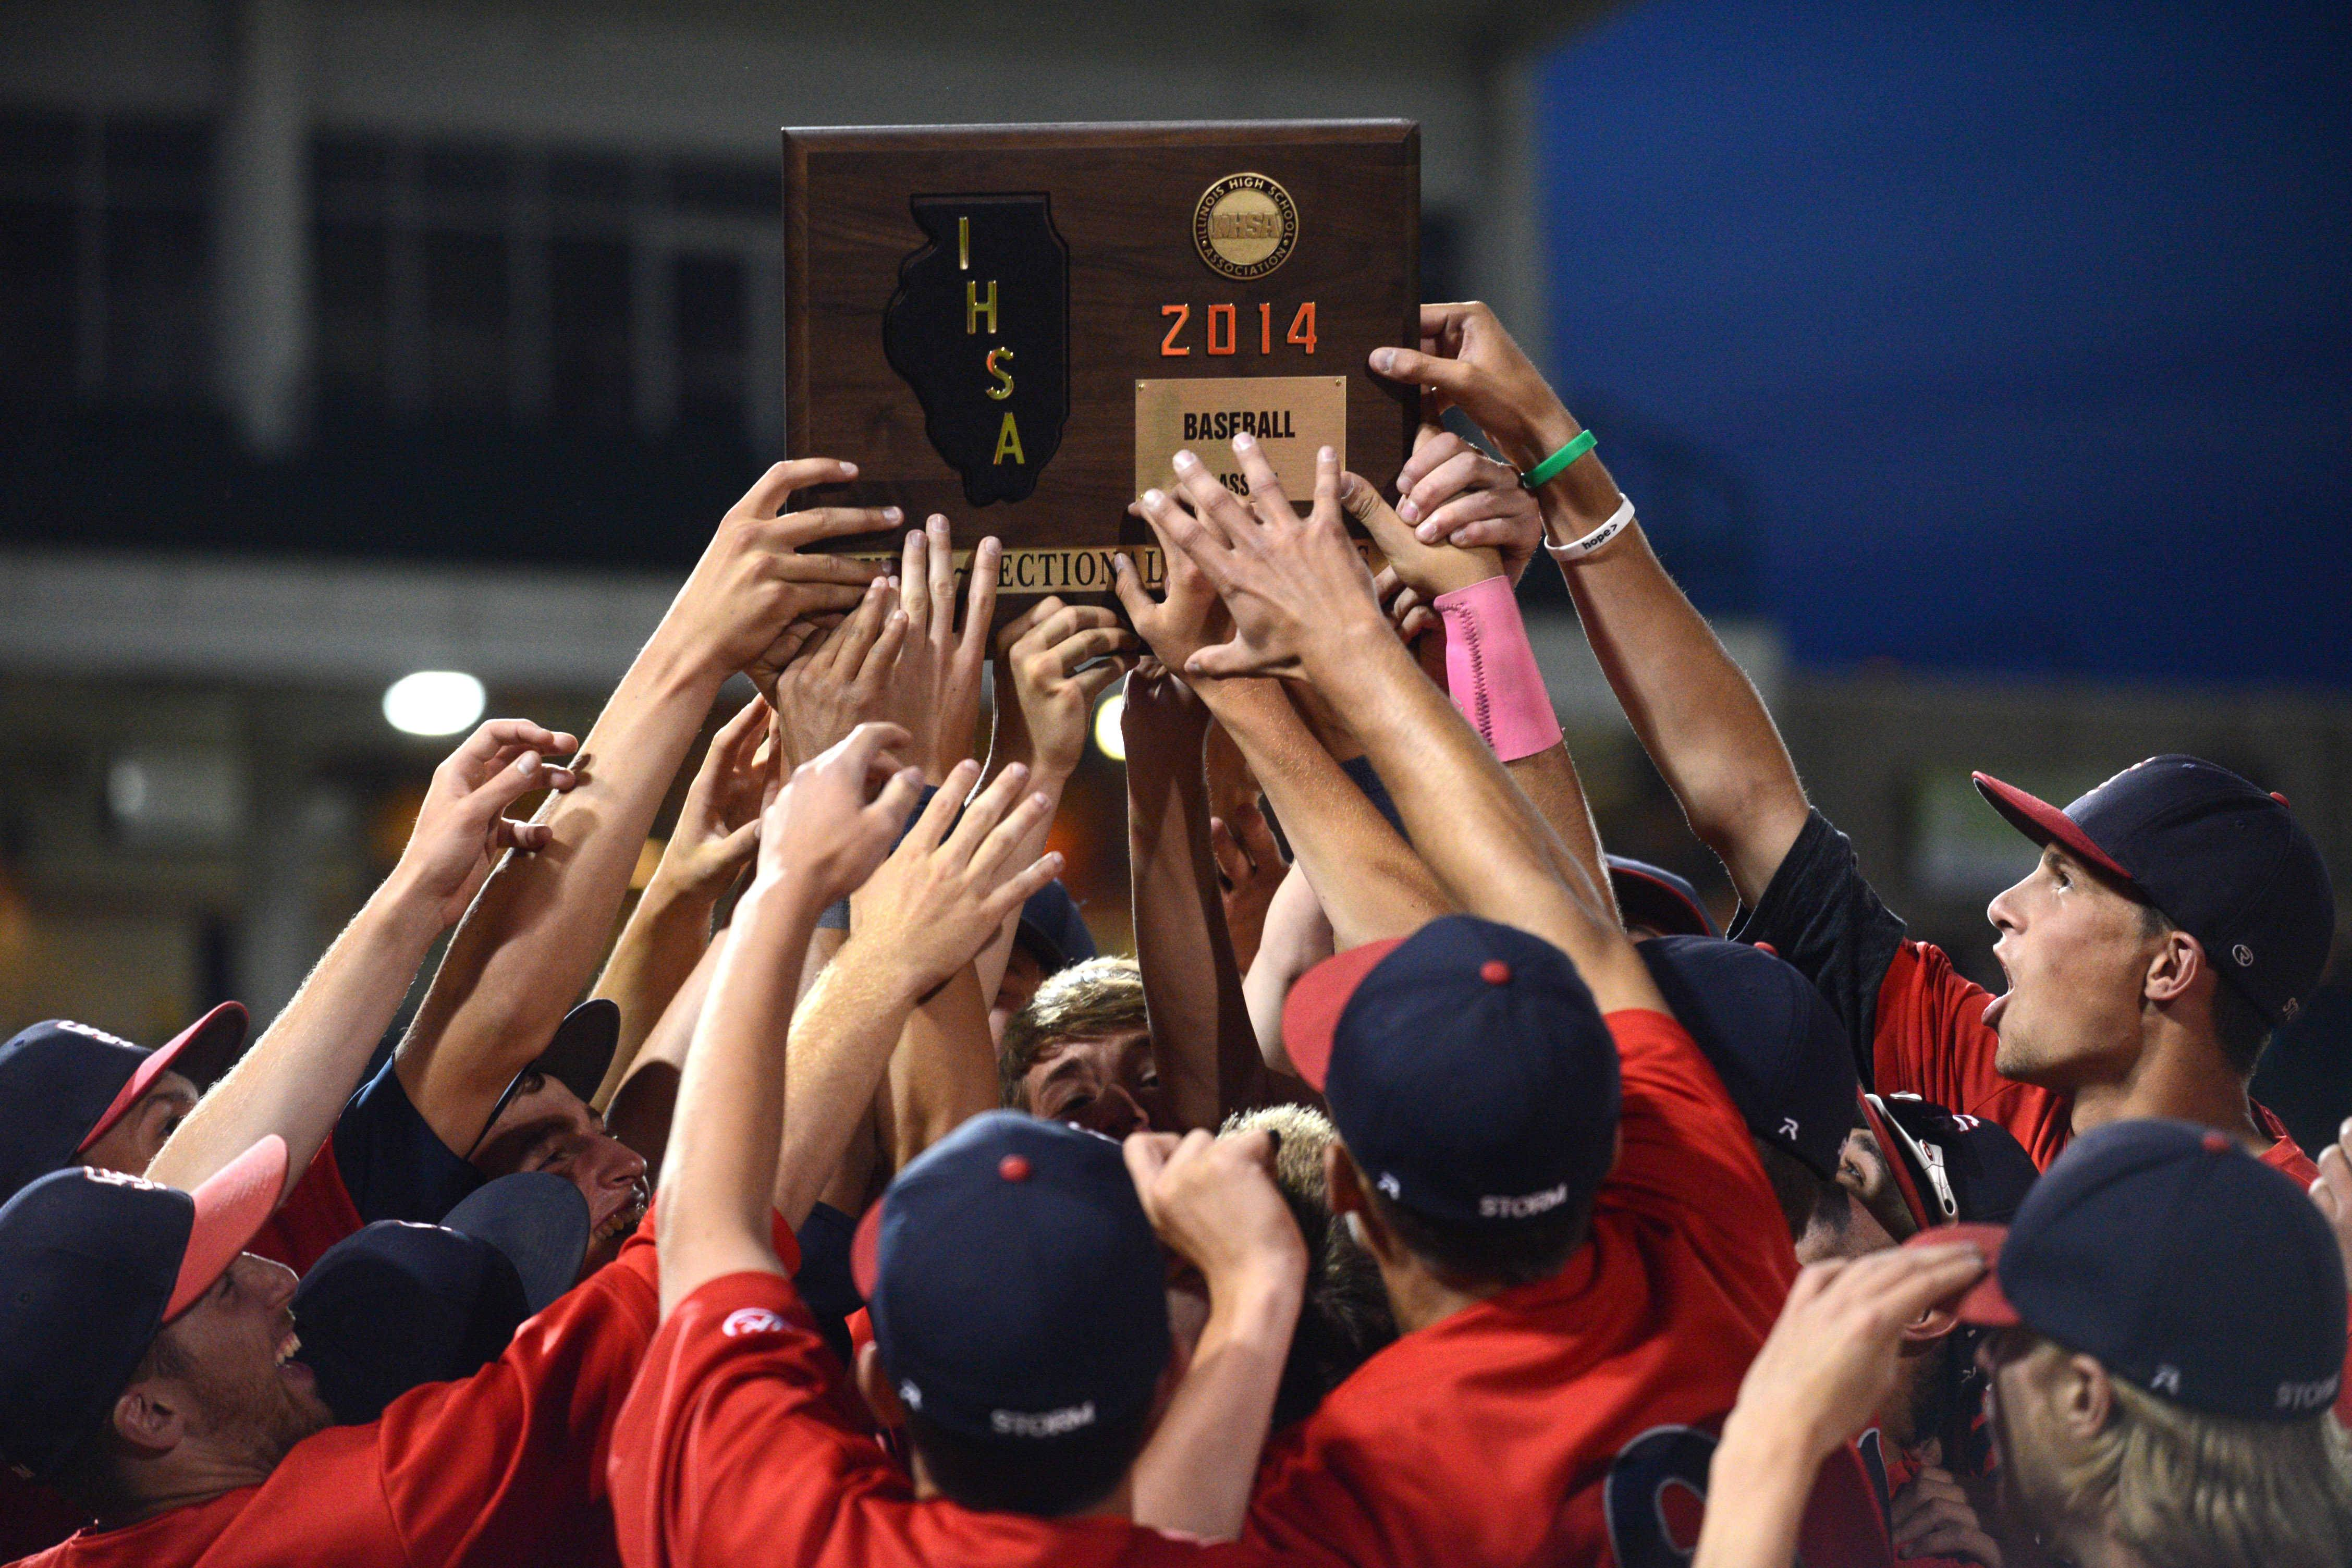 South Elgin's players hoist their hardware after a 7-6 win over Evanston during the Class 4A supersectional baseball game at Boomers Stadium in Schaumburg on Monday night.